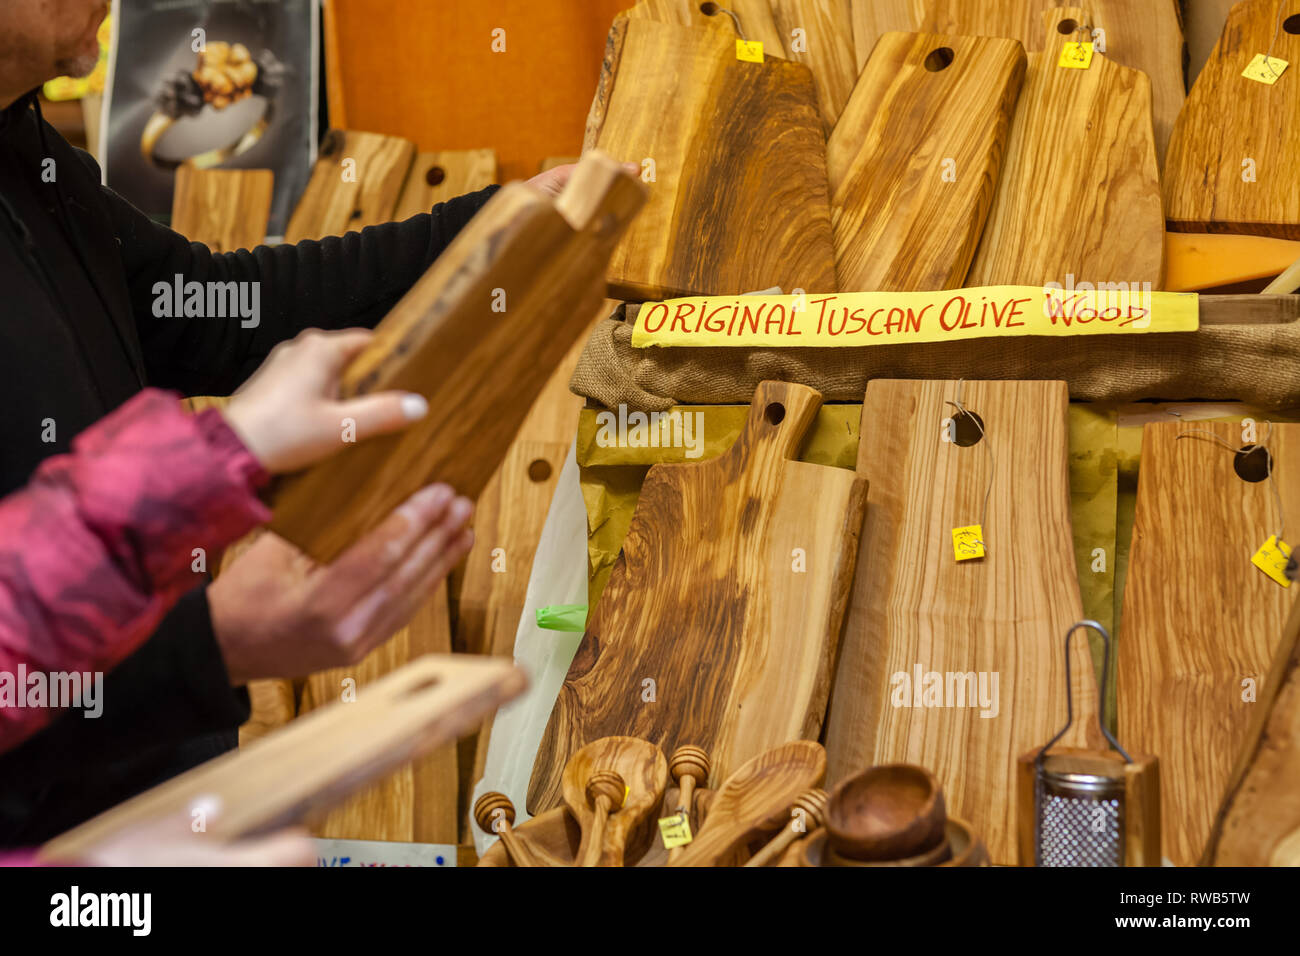 Local Market Tool >> Olive Wood Cutting Boards On The Local Market In Tuscana Stock Photo